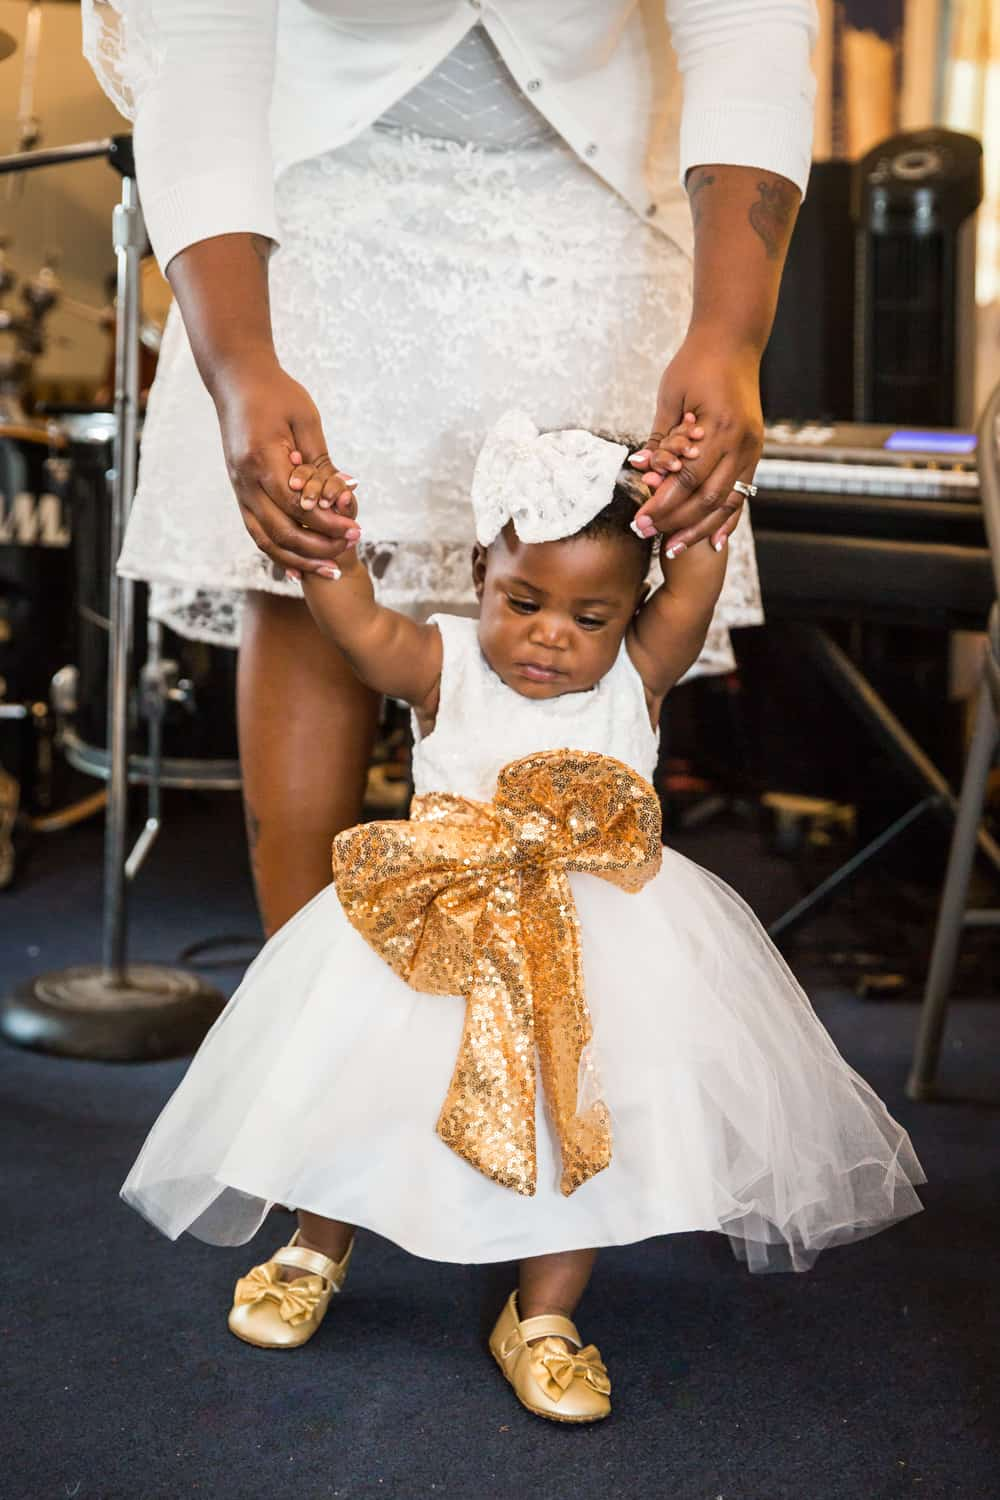 Mother's hands holding baby girl wearing white dress and gold sash